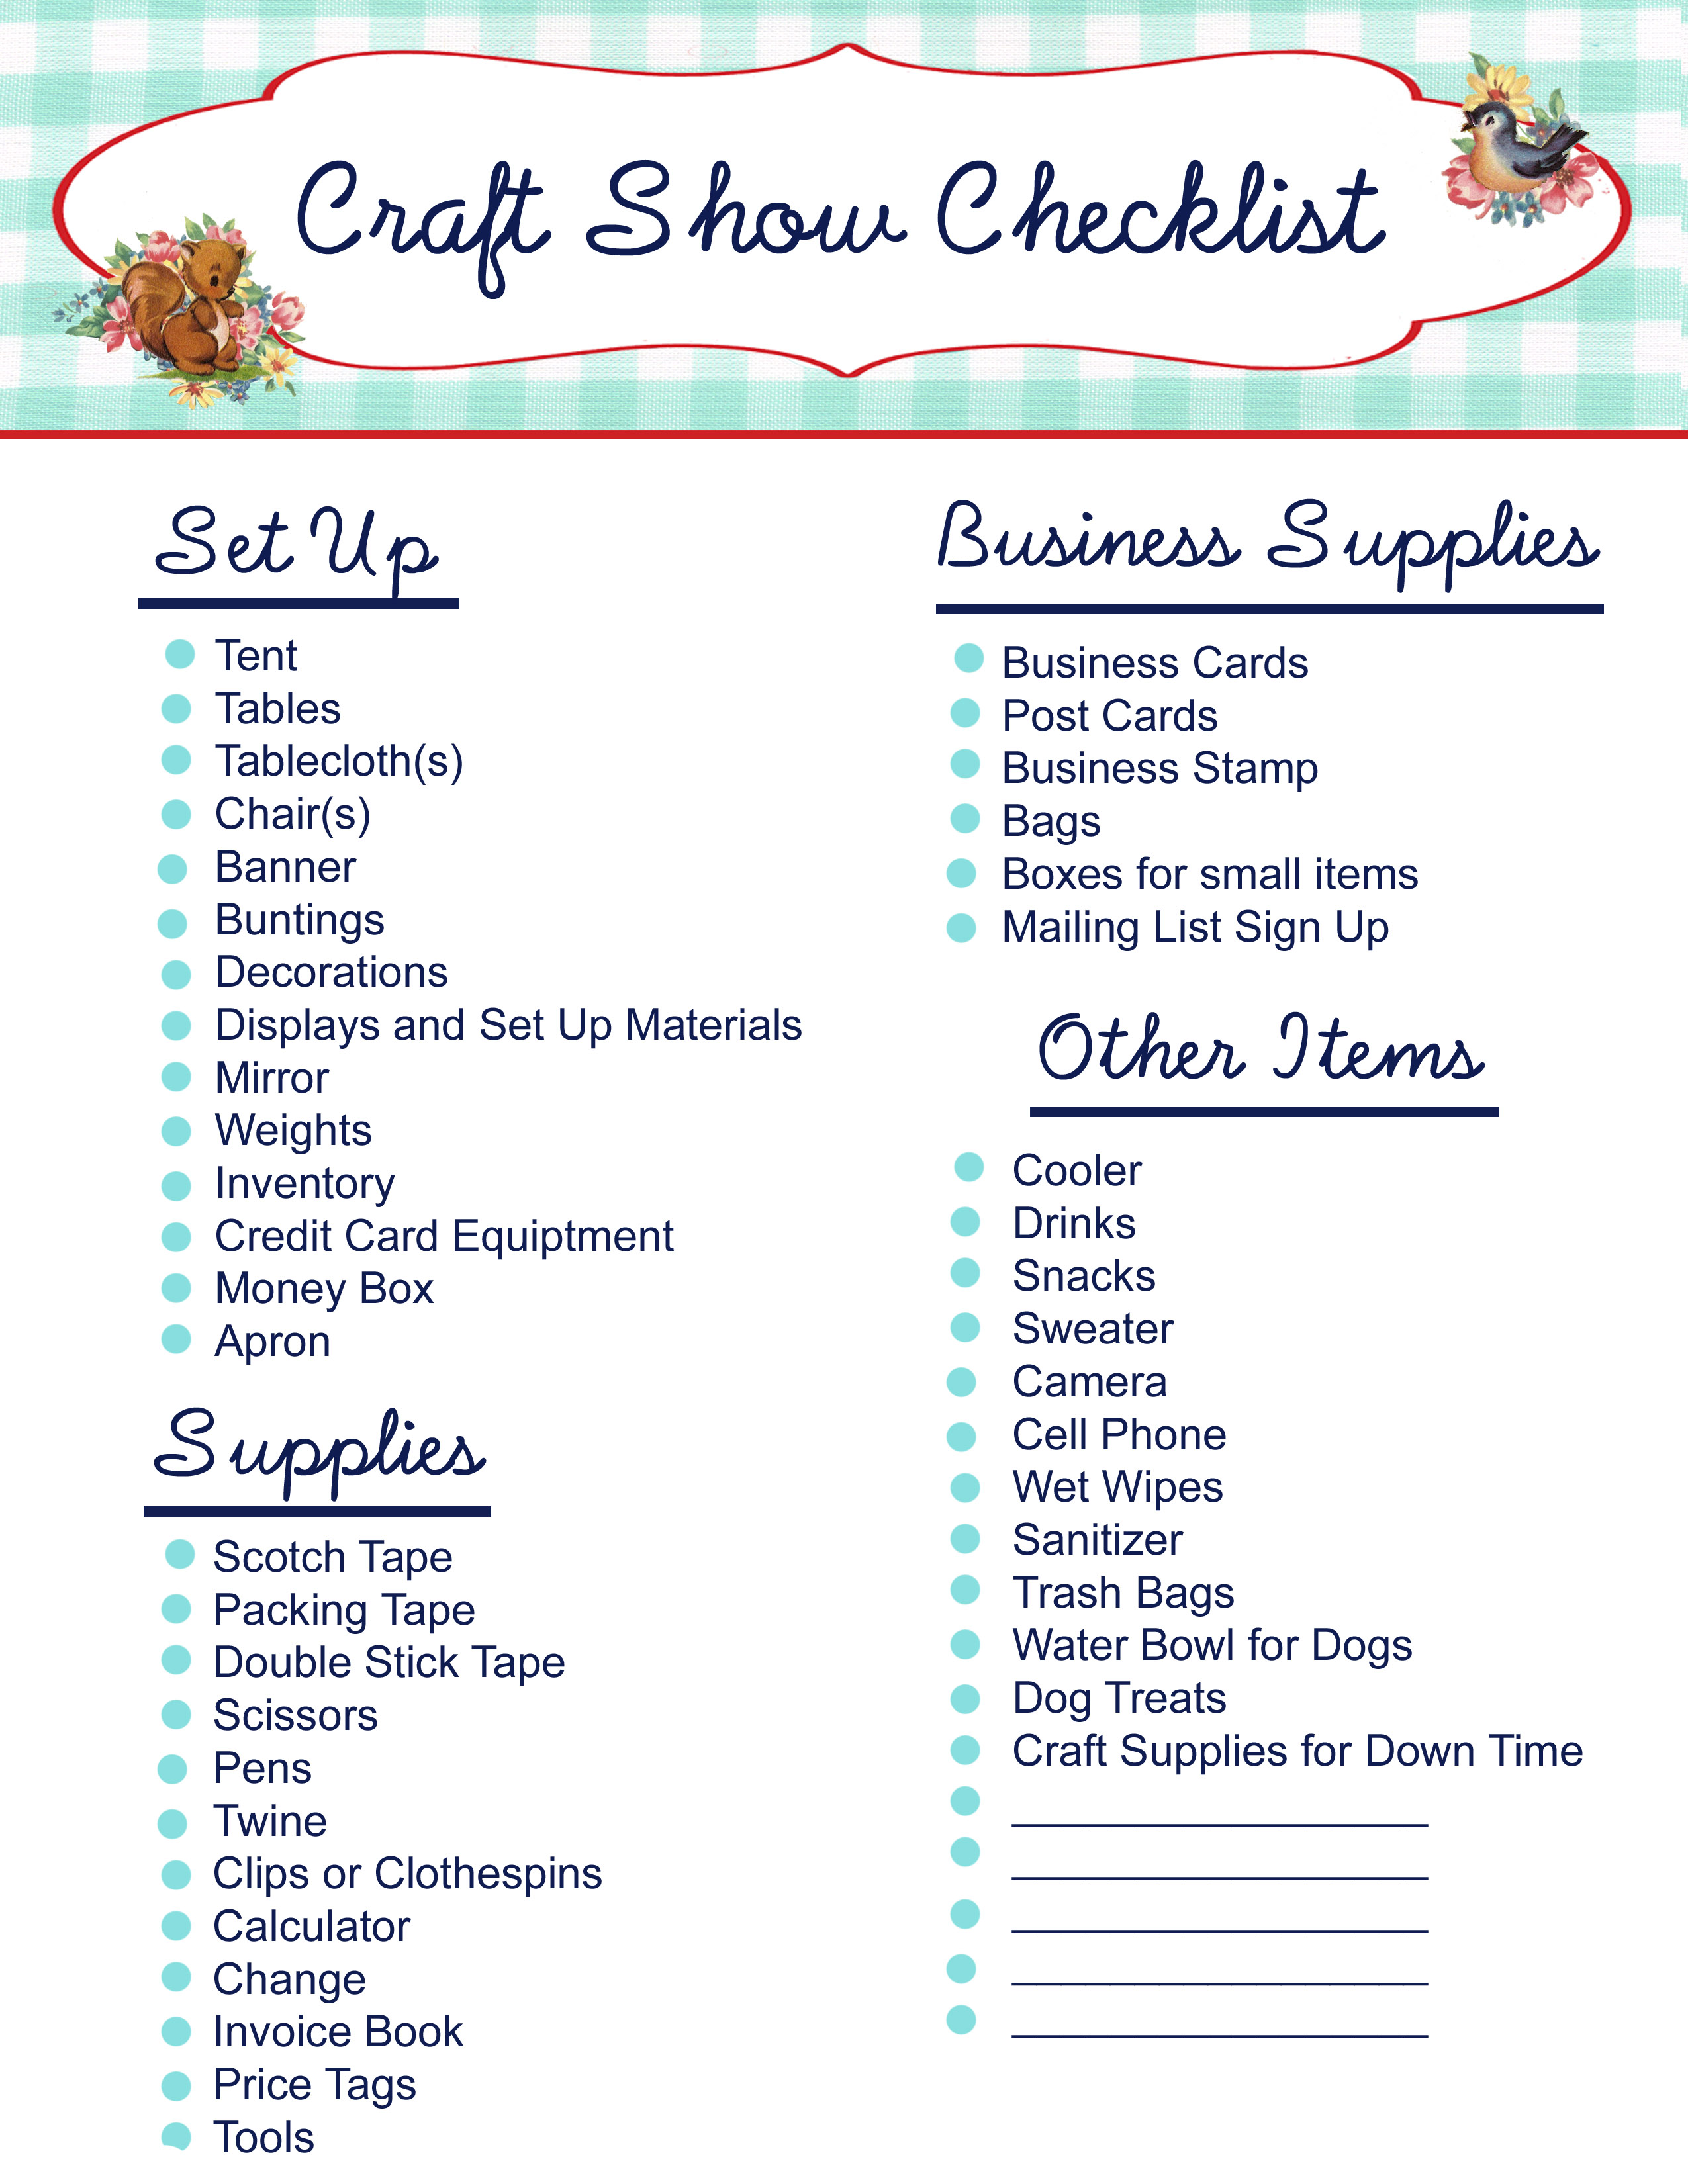 Exhibition Booth Checklist : Free printable craft show checklist my so called crafty